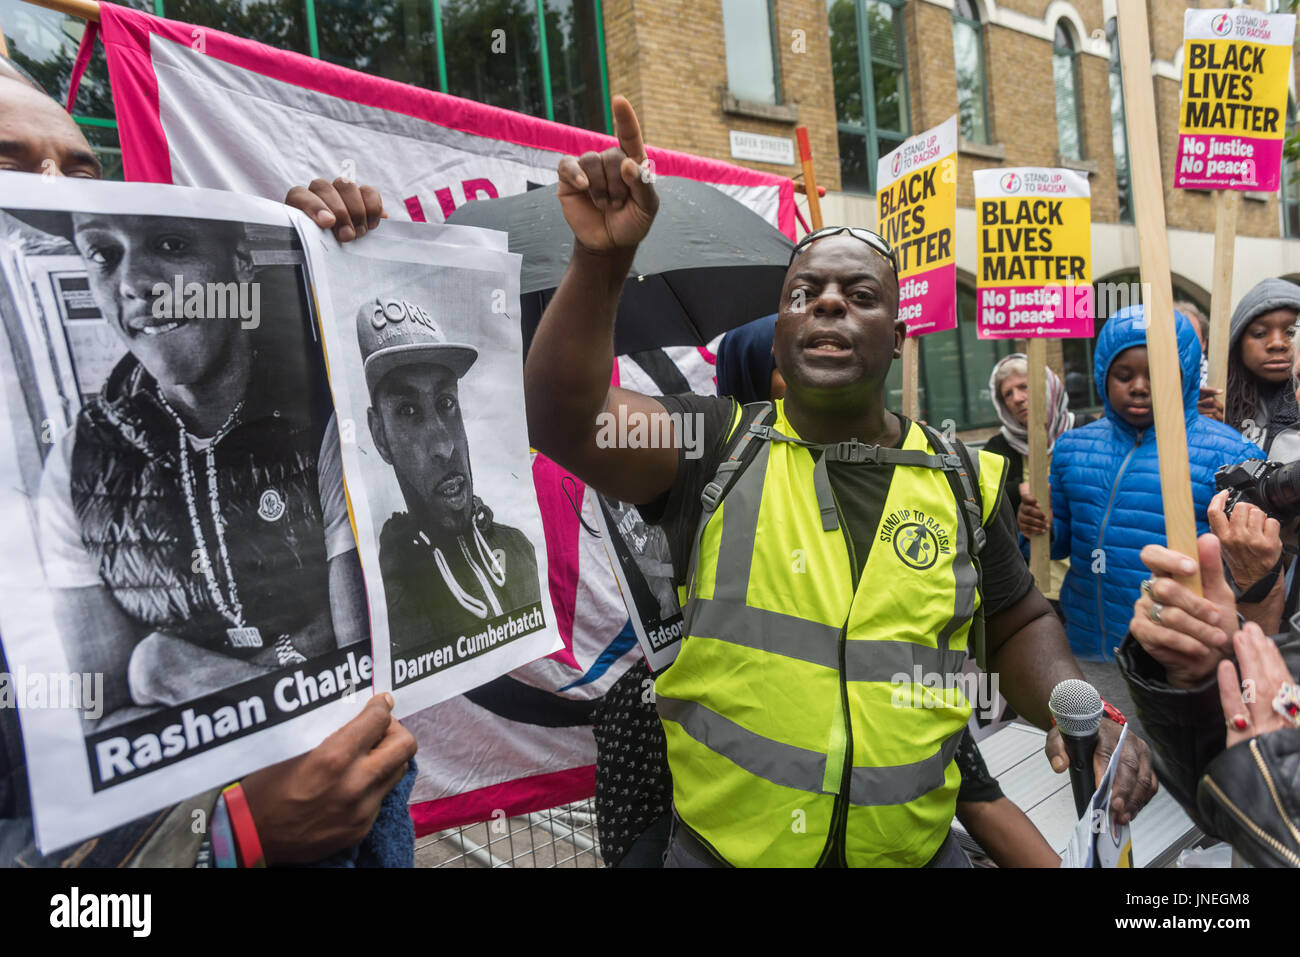 July 29, 2017 - London, UK - London, UK. 29th July 2017. Protesters at Stoke Newington Police Station for Rashan - Stock Image